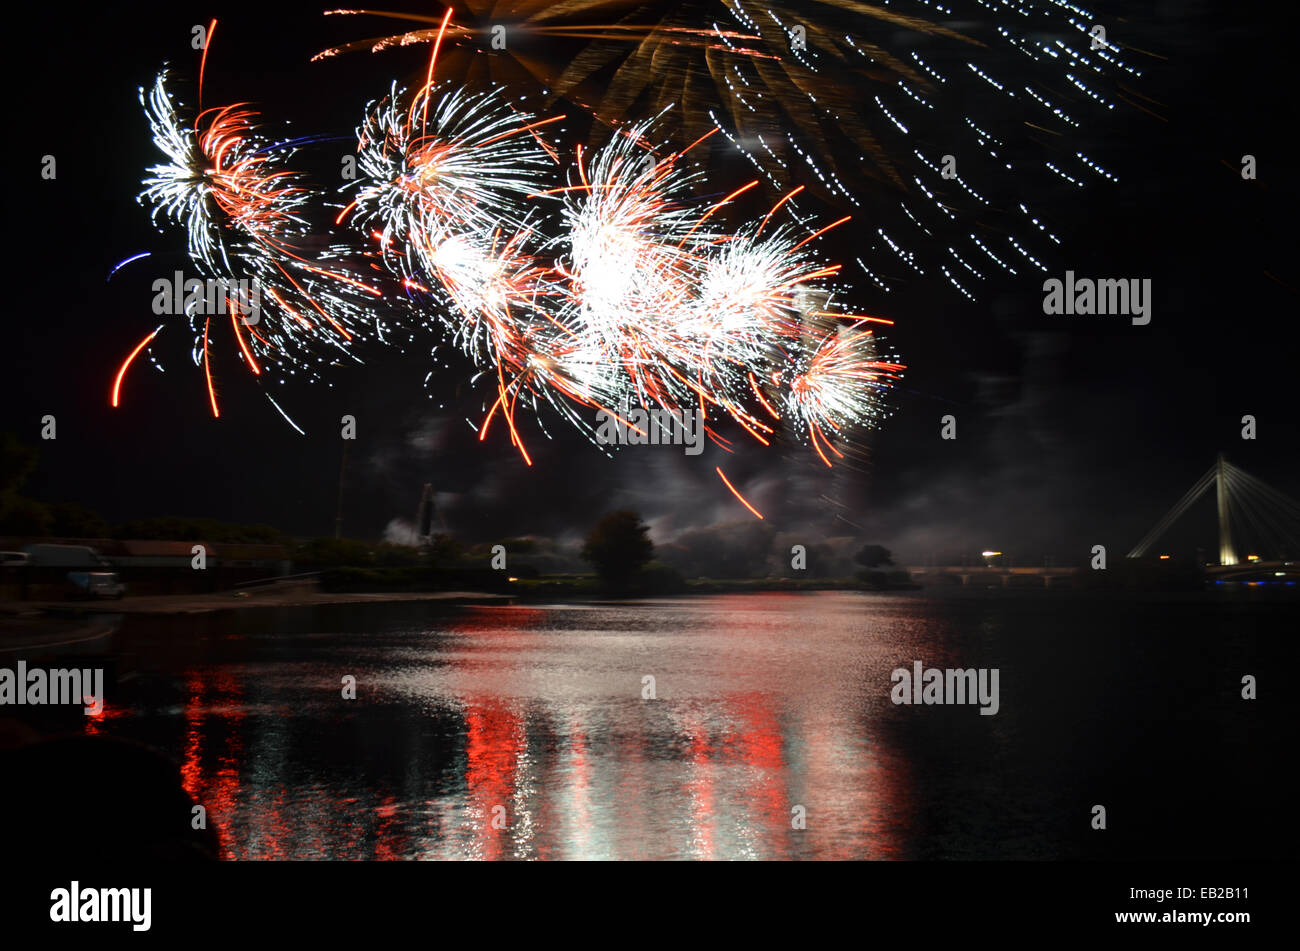 A firework display by the Marine Lake in Southport during the first day of the three day British Musical Fireworks - Stock Image